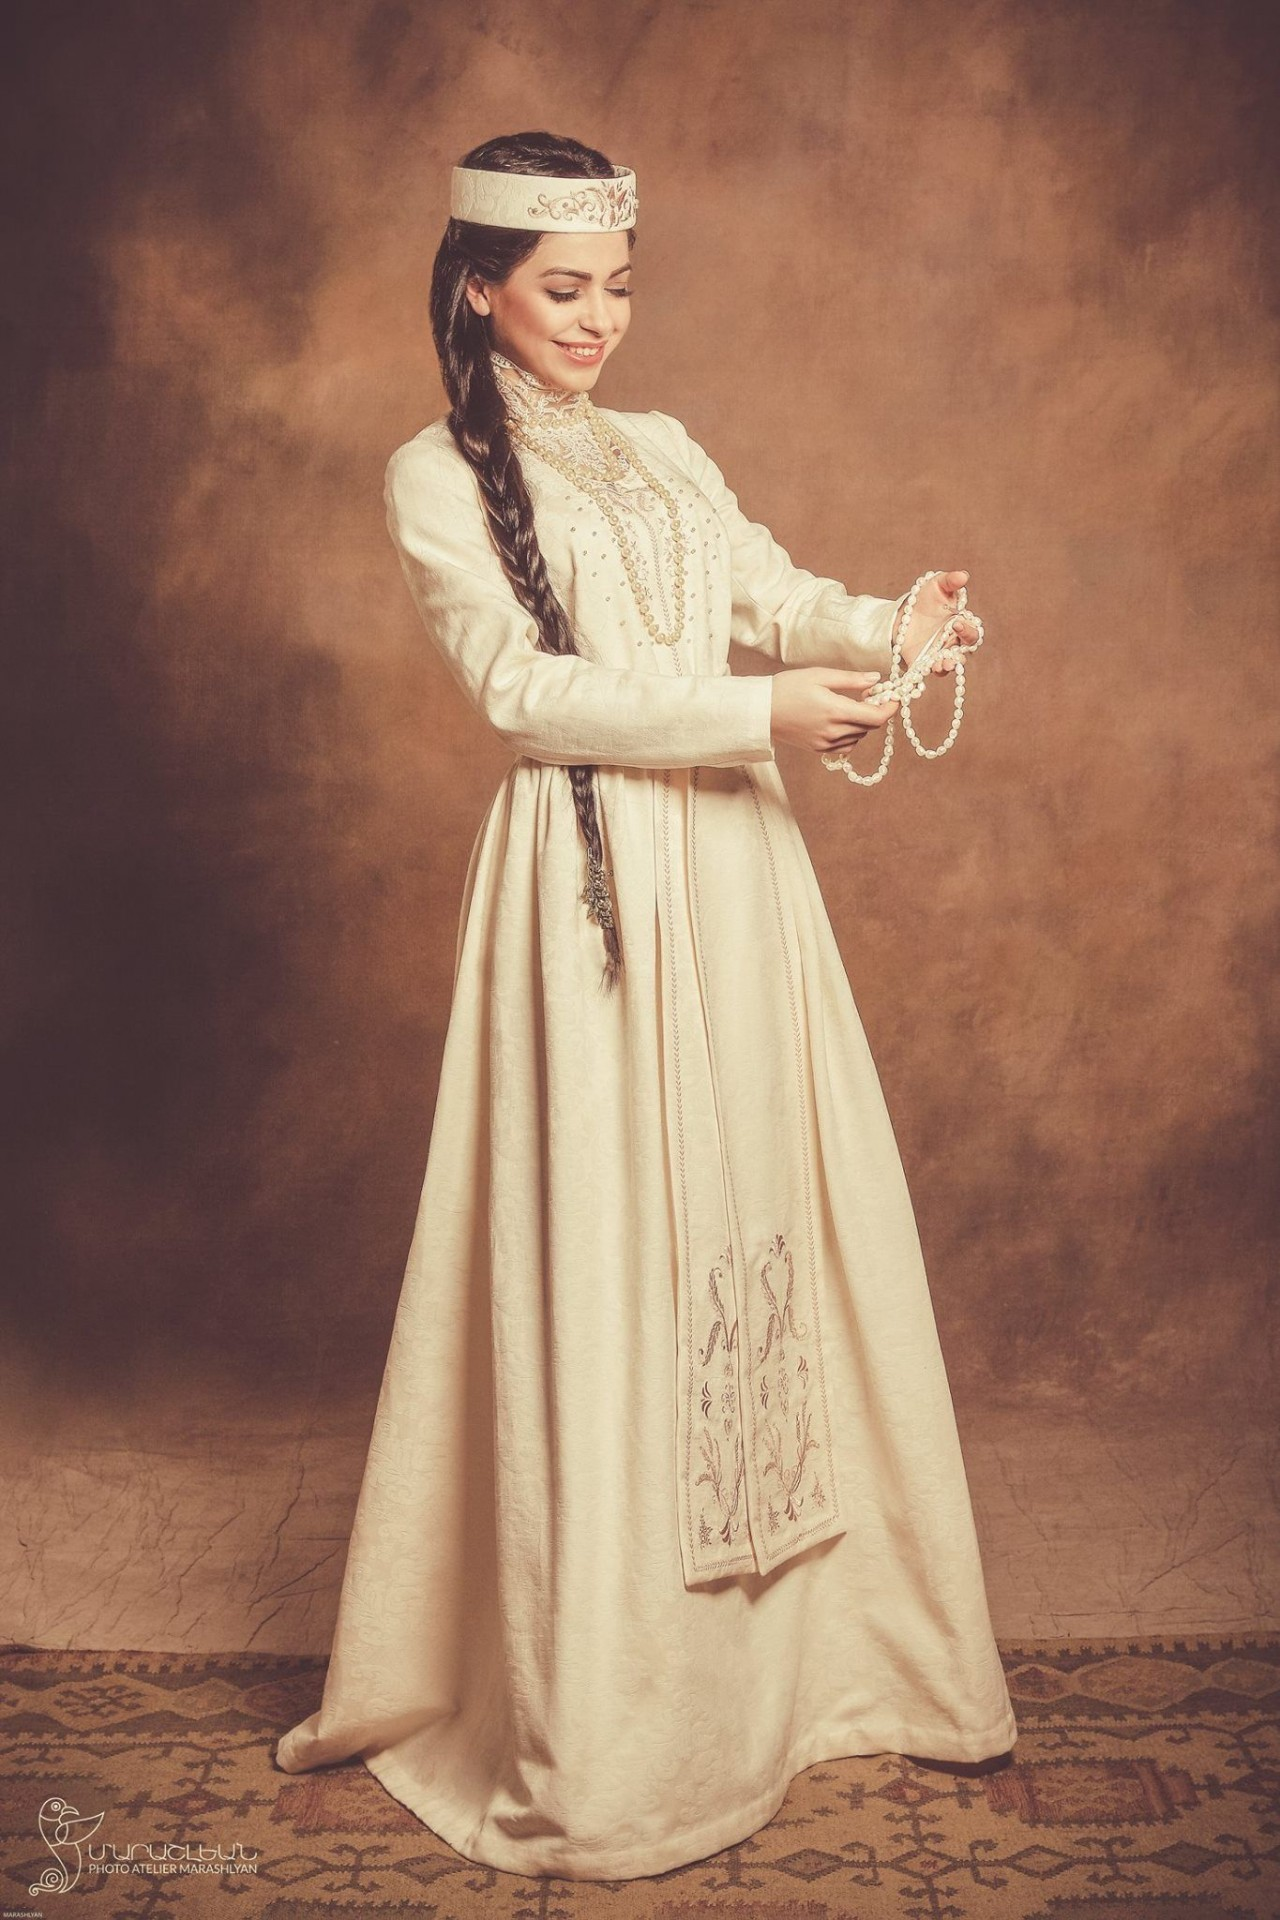 Discover The Most Beautiful and Stunning Traditional Dress In The World